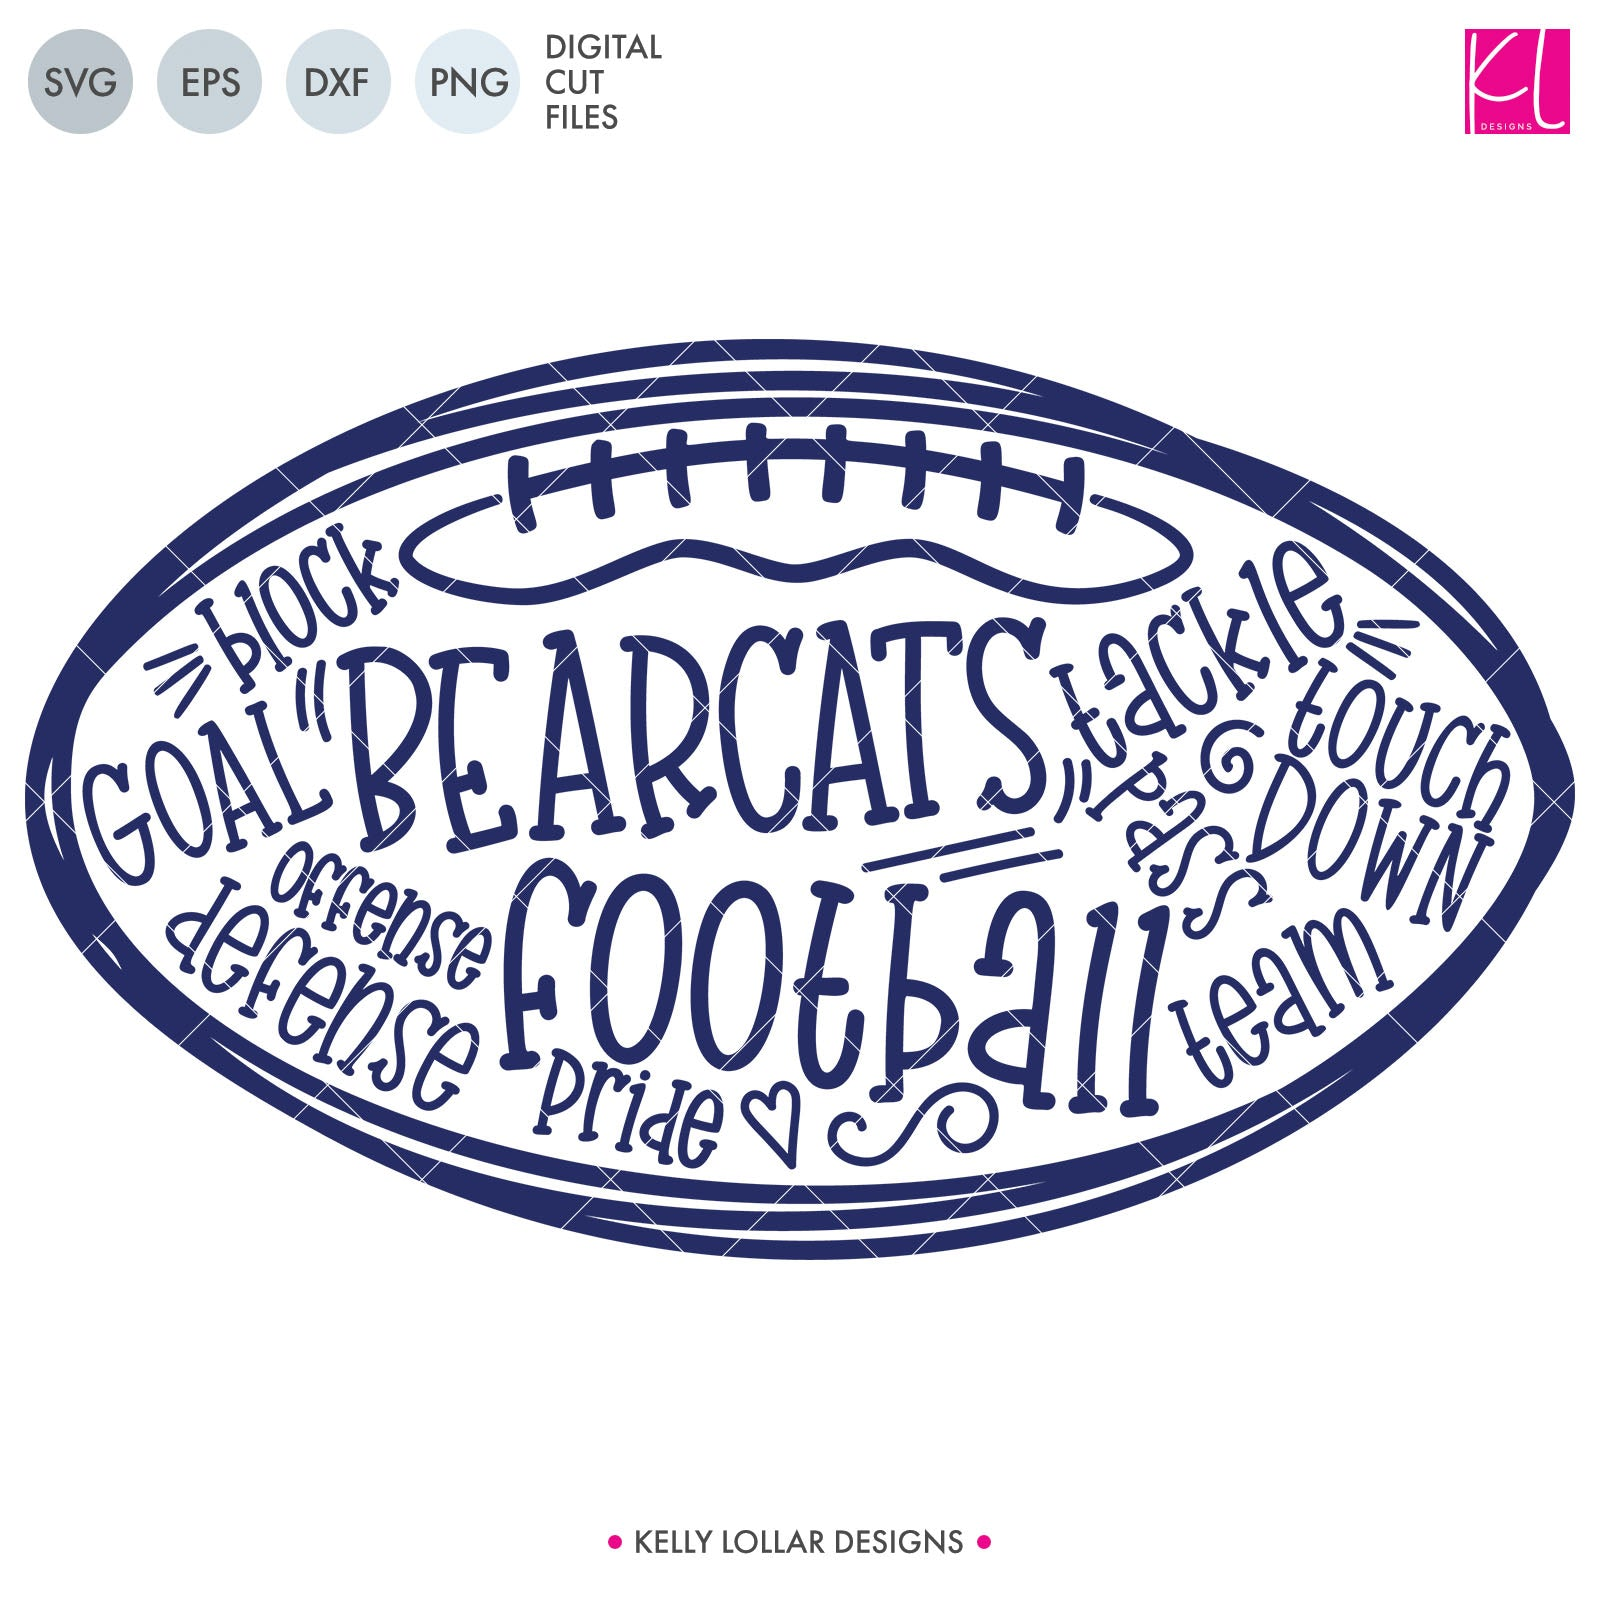 Bearcats Football Bundle | SVG DXF EPS PNG Cut Files This fifteen piece Bearcat Football Bundle was created with school crafters in mind. Create an assortment of spirit shirts with choices ranging from family designs to monograms to classic. 15